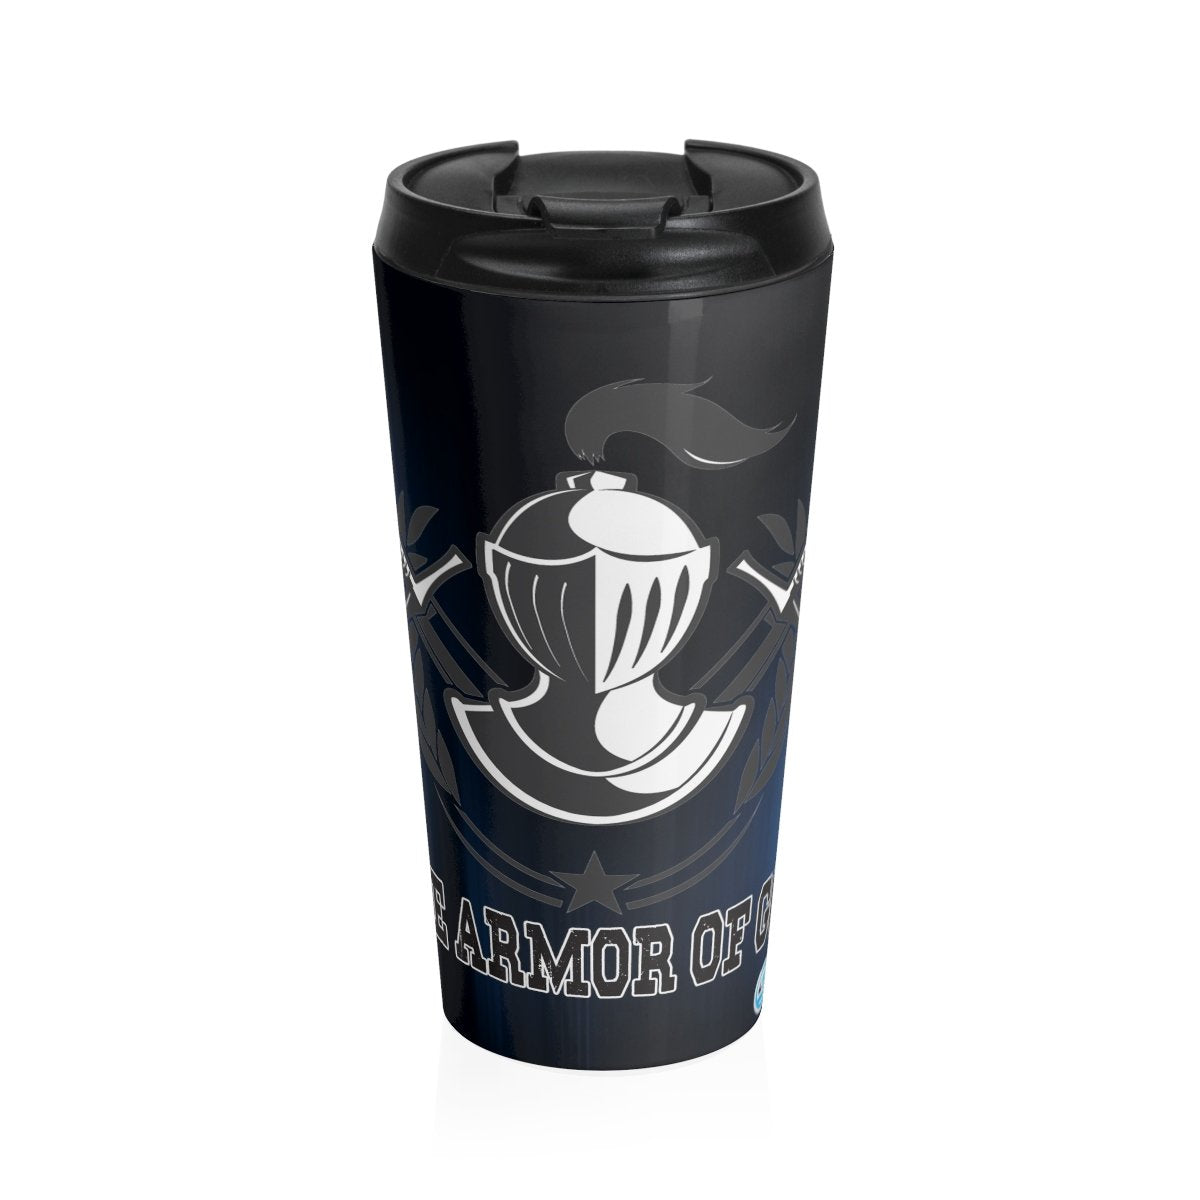 Stainless Steel Travel Mug - The Armor of God